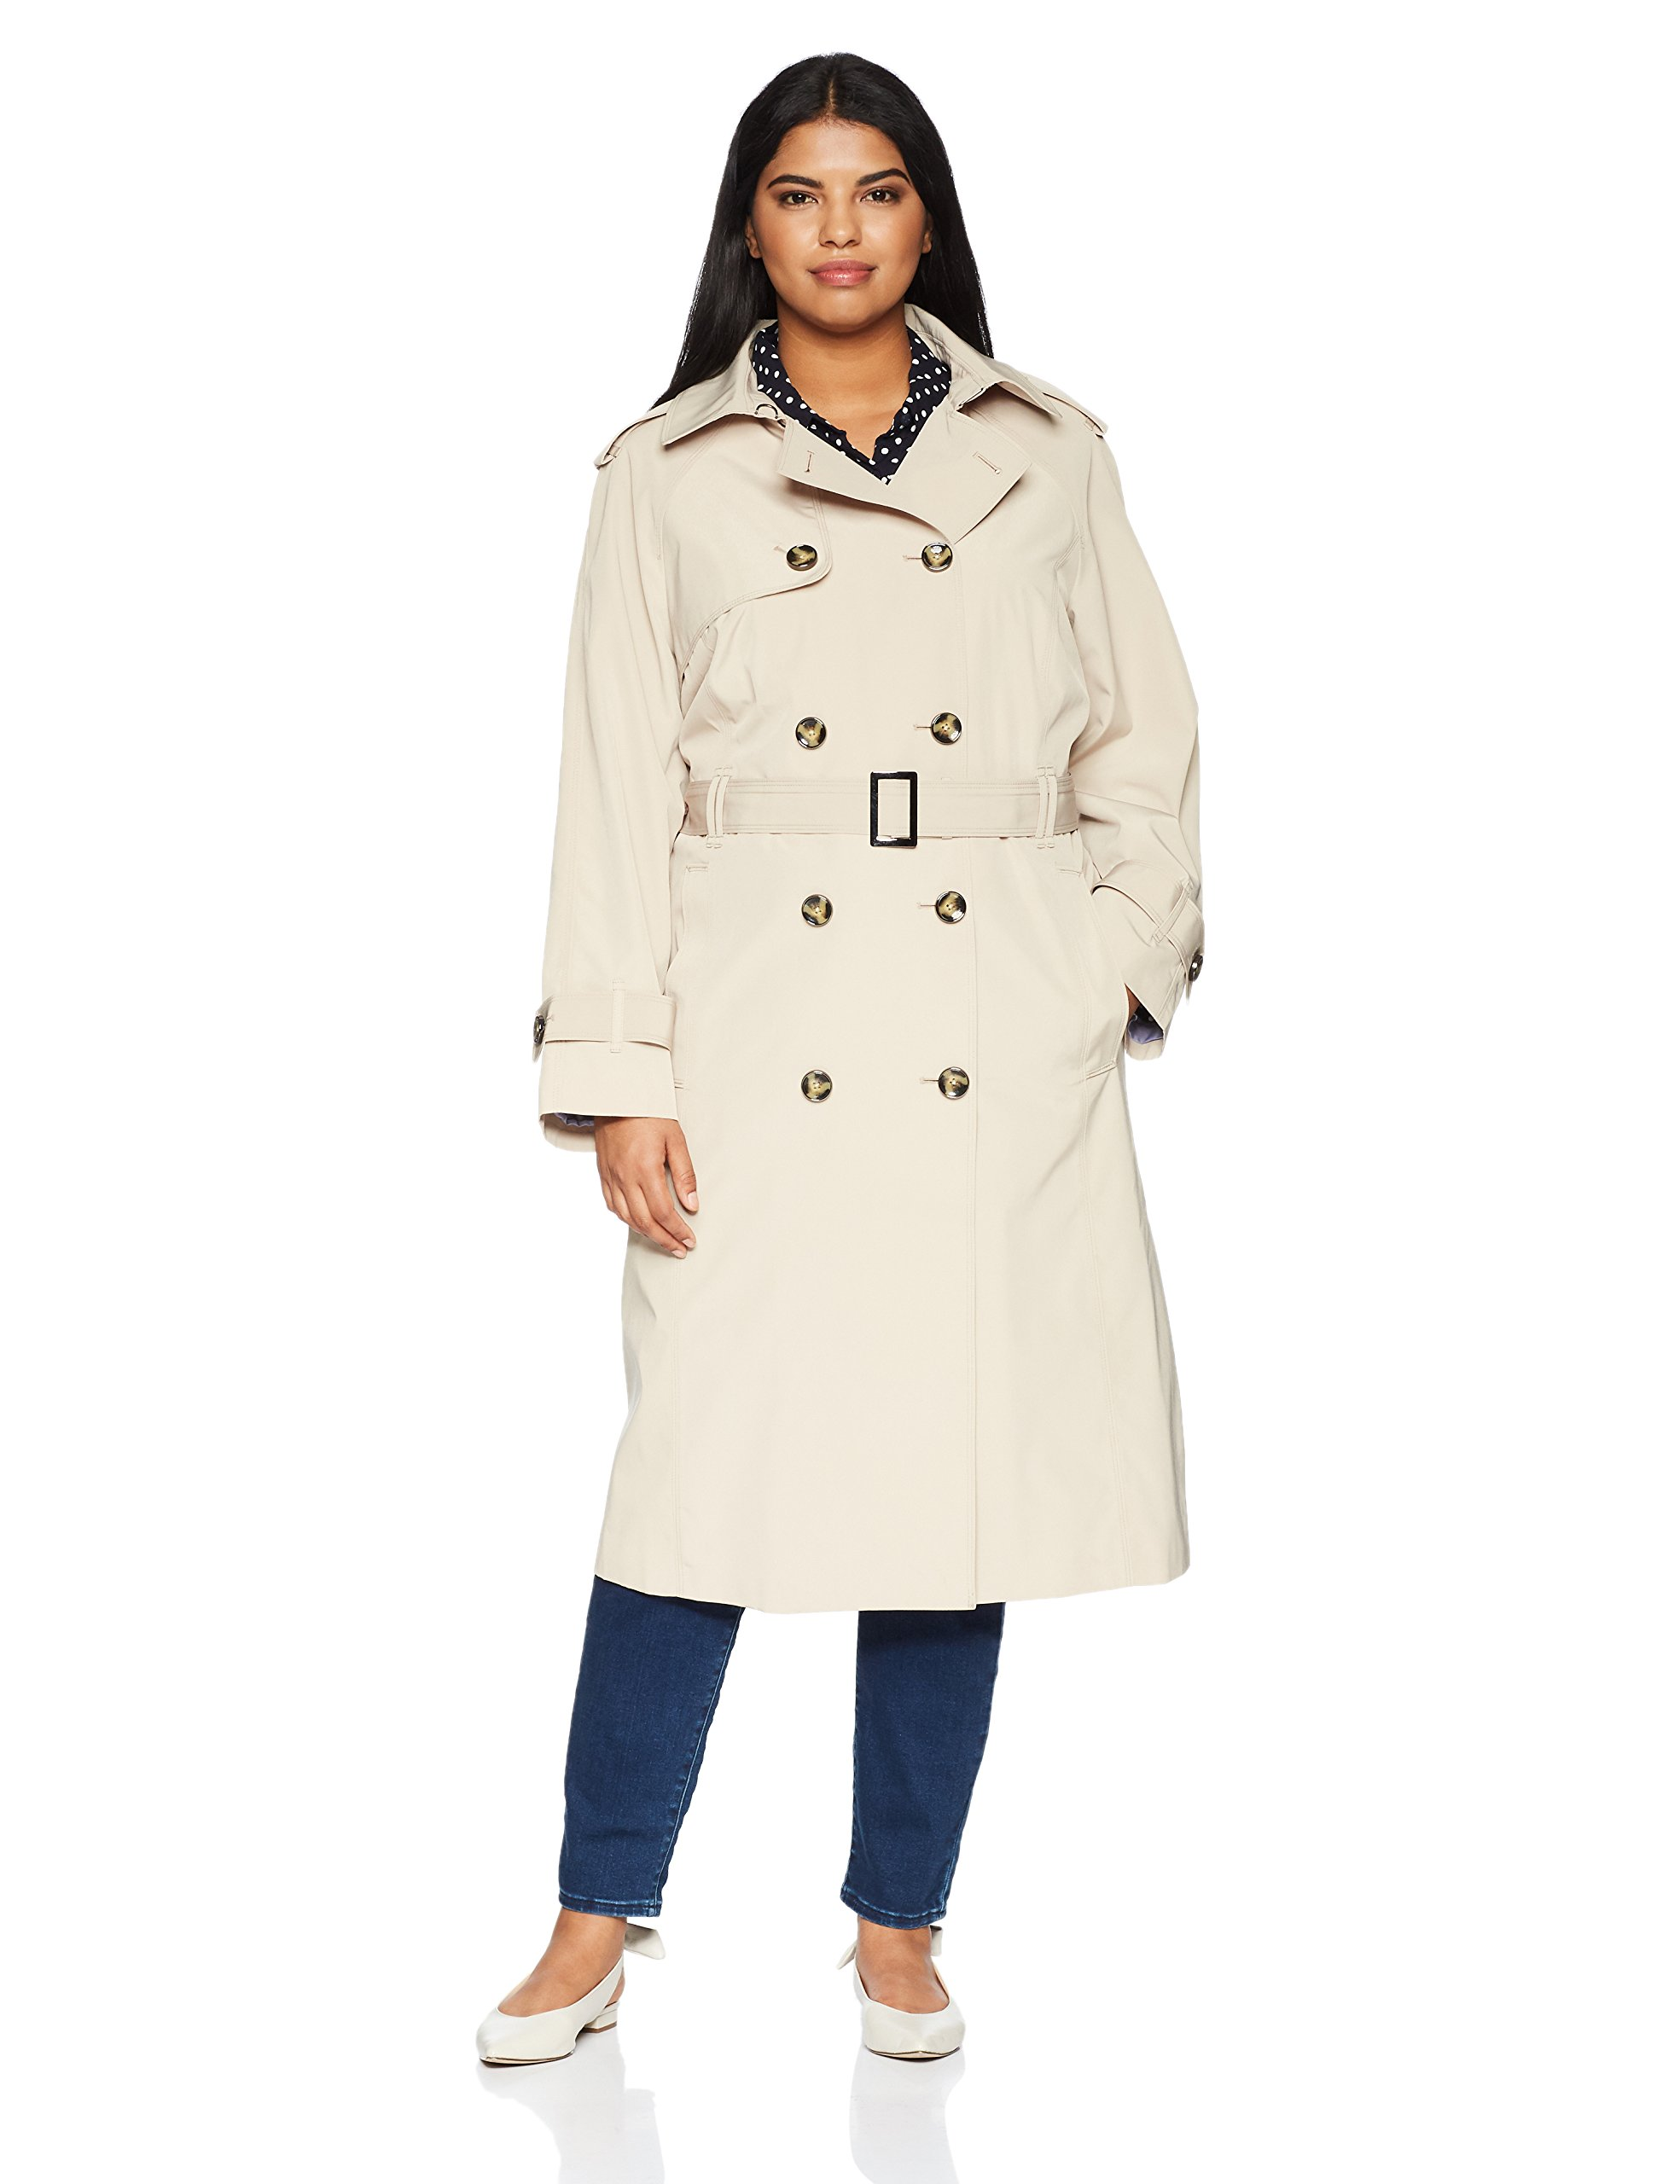 London Fog Women's Plus Size Double-Breasted 3/4 Length Belted Trench Coat, Stone, 3X by London Fog